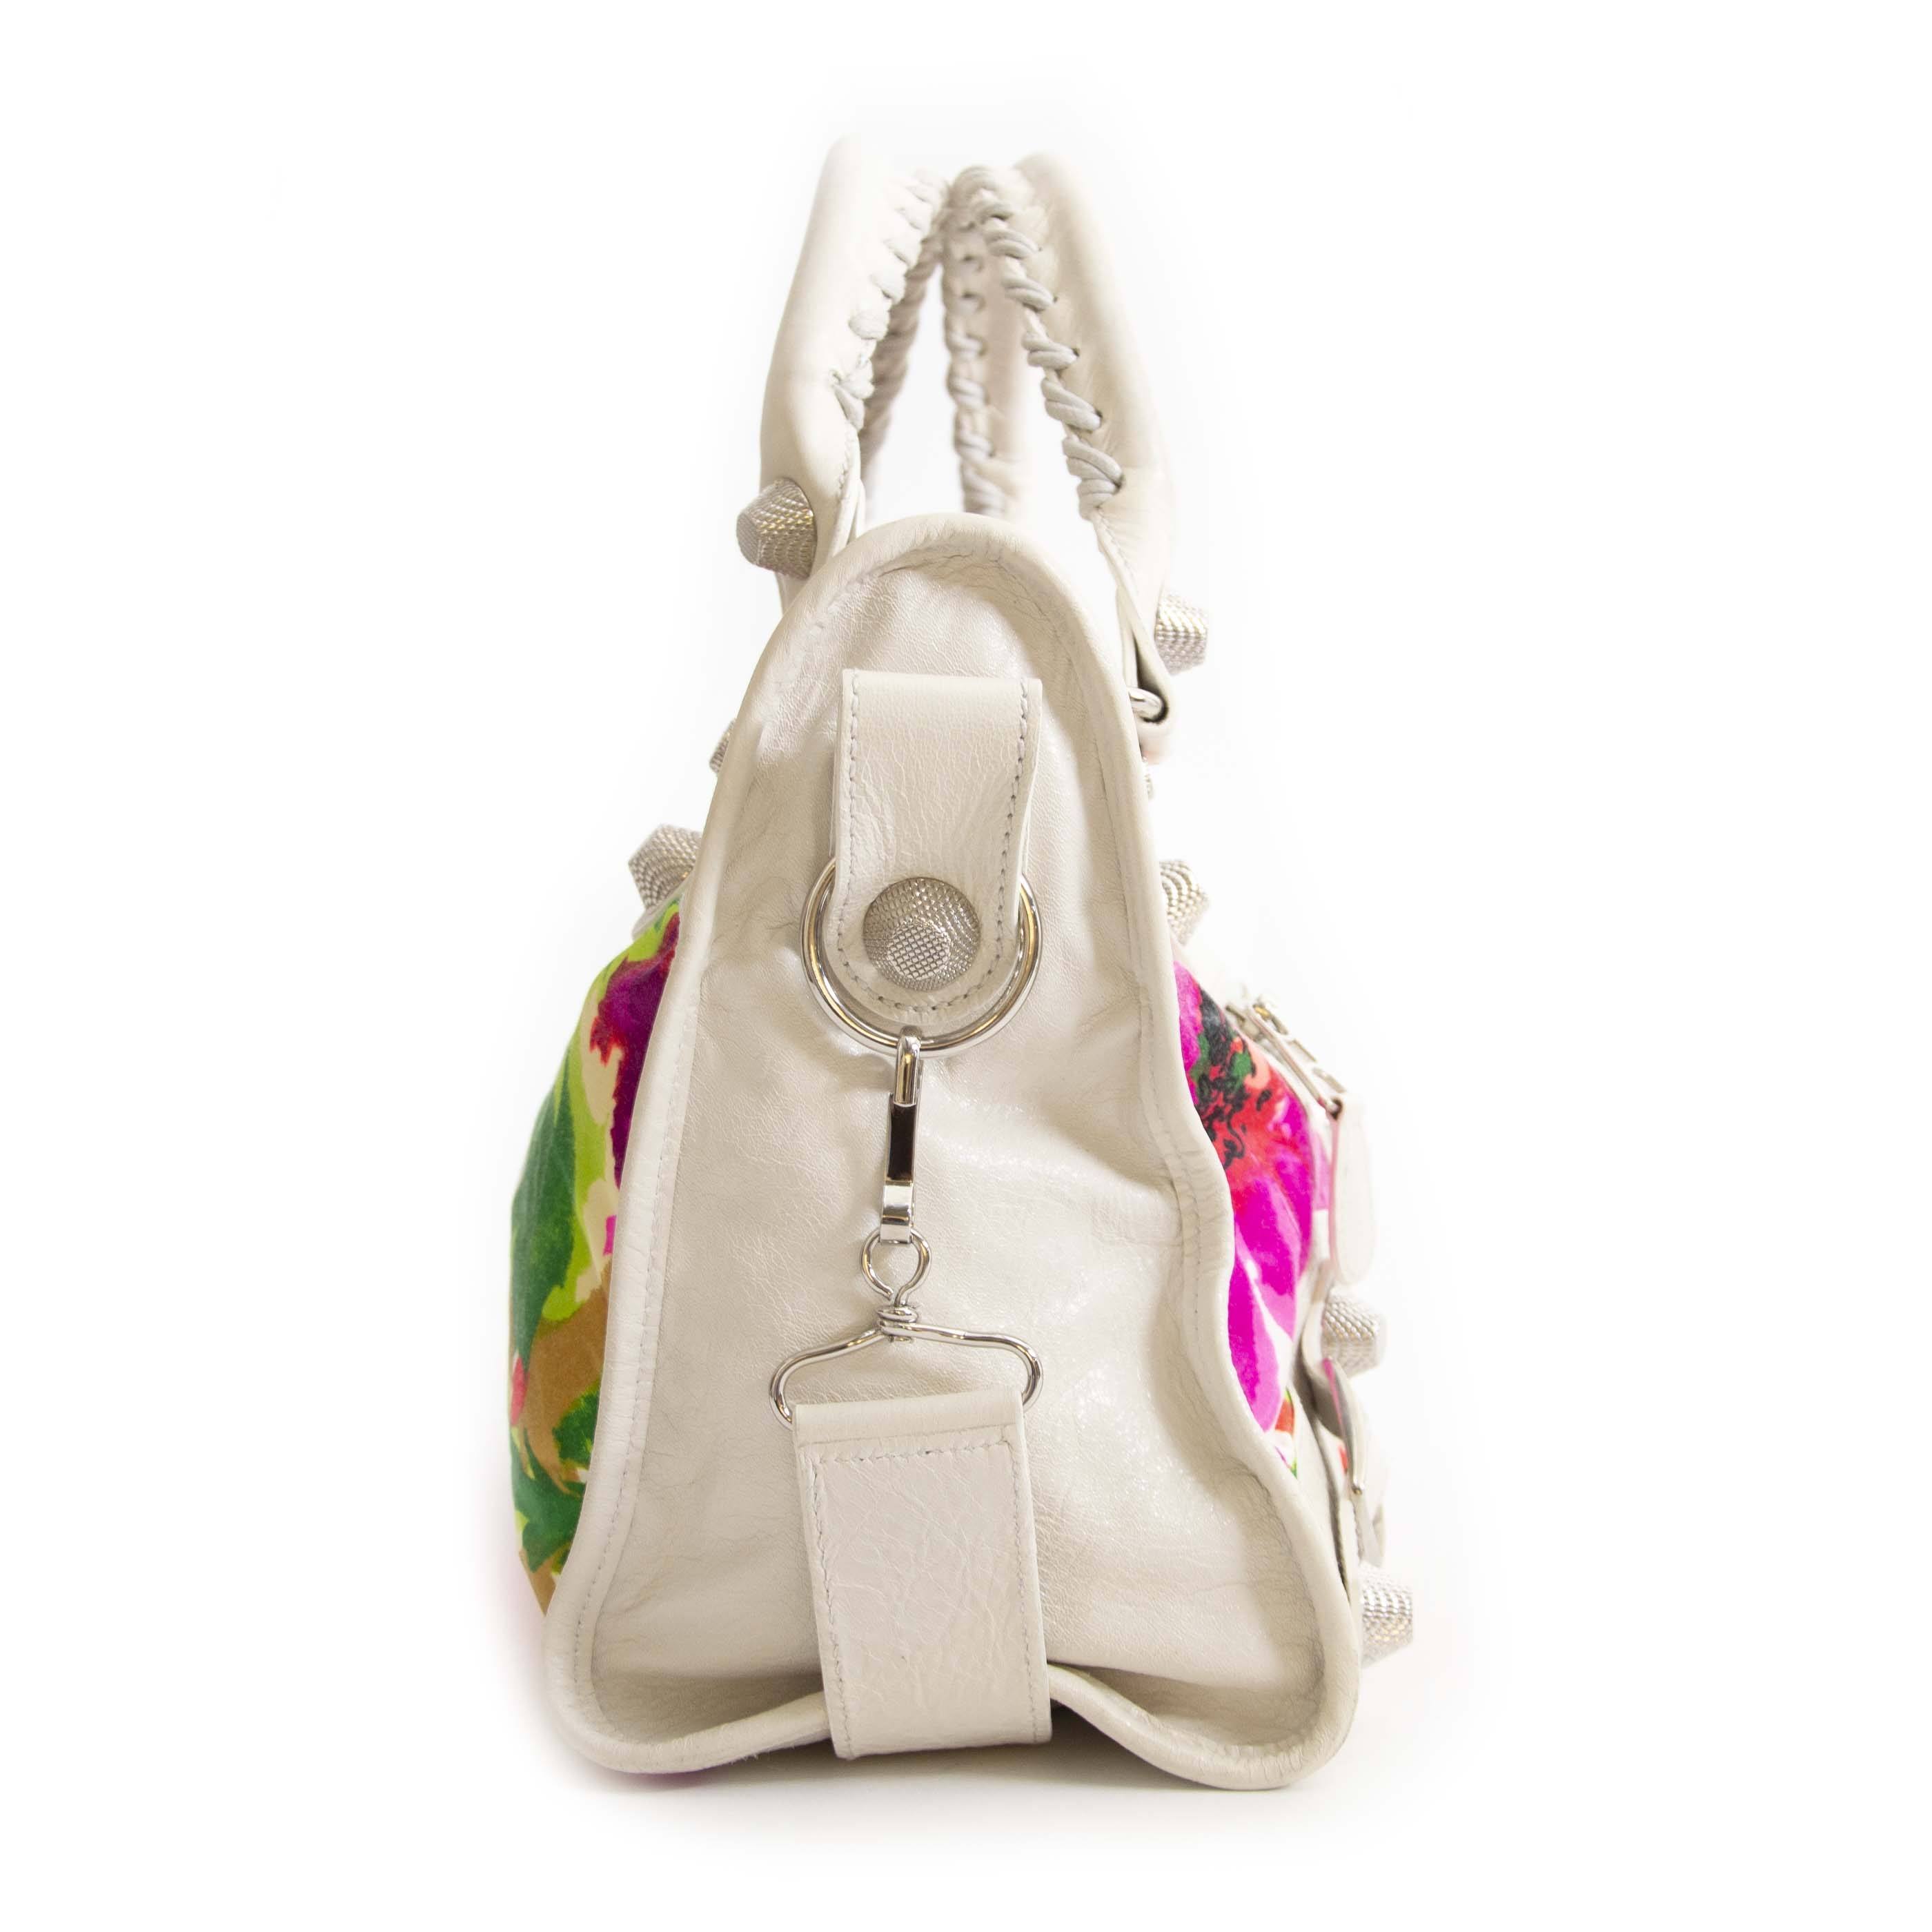 Authentieke tweedehands vintage Balenciaga Floral Limited Edition City Bag online shopping webshop LabelLOV